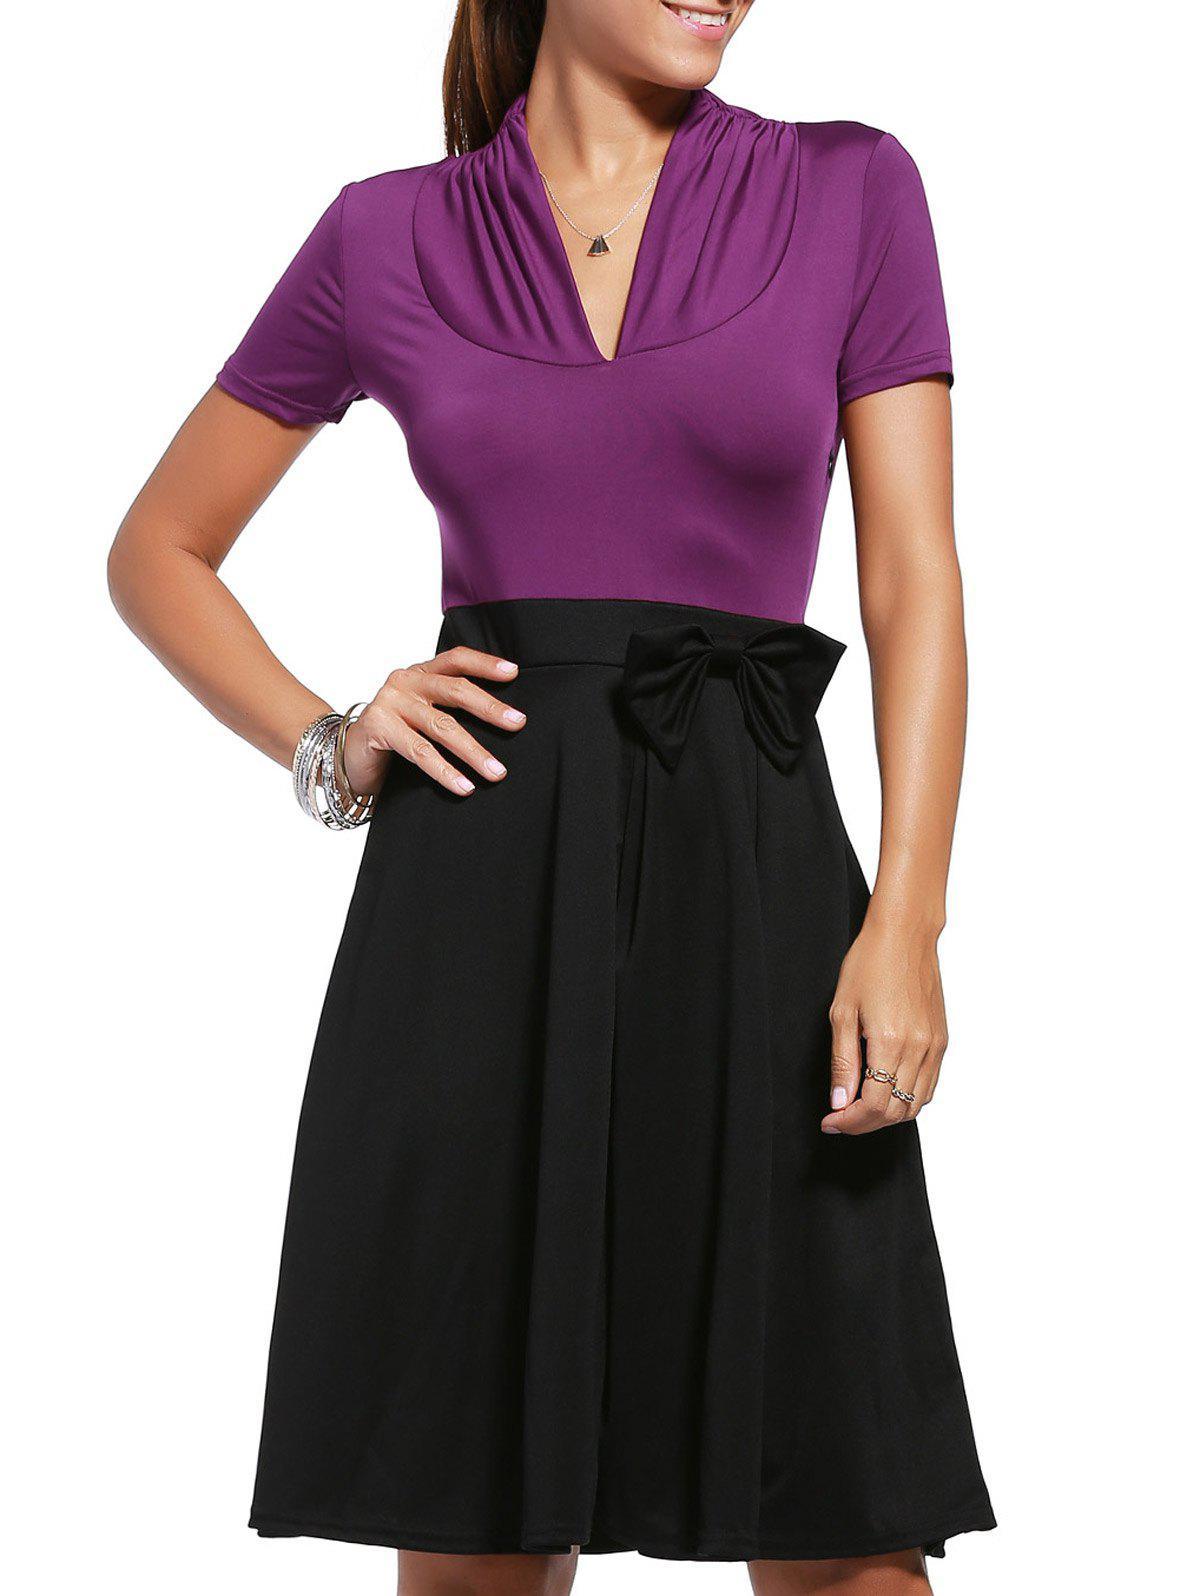 Bowknot Embellished Two Tone Dress - XL PURPLE